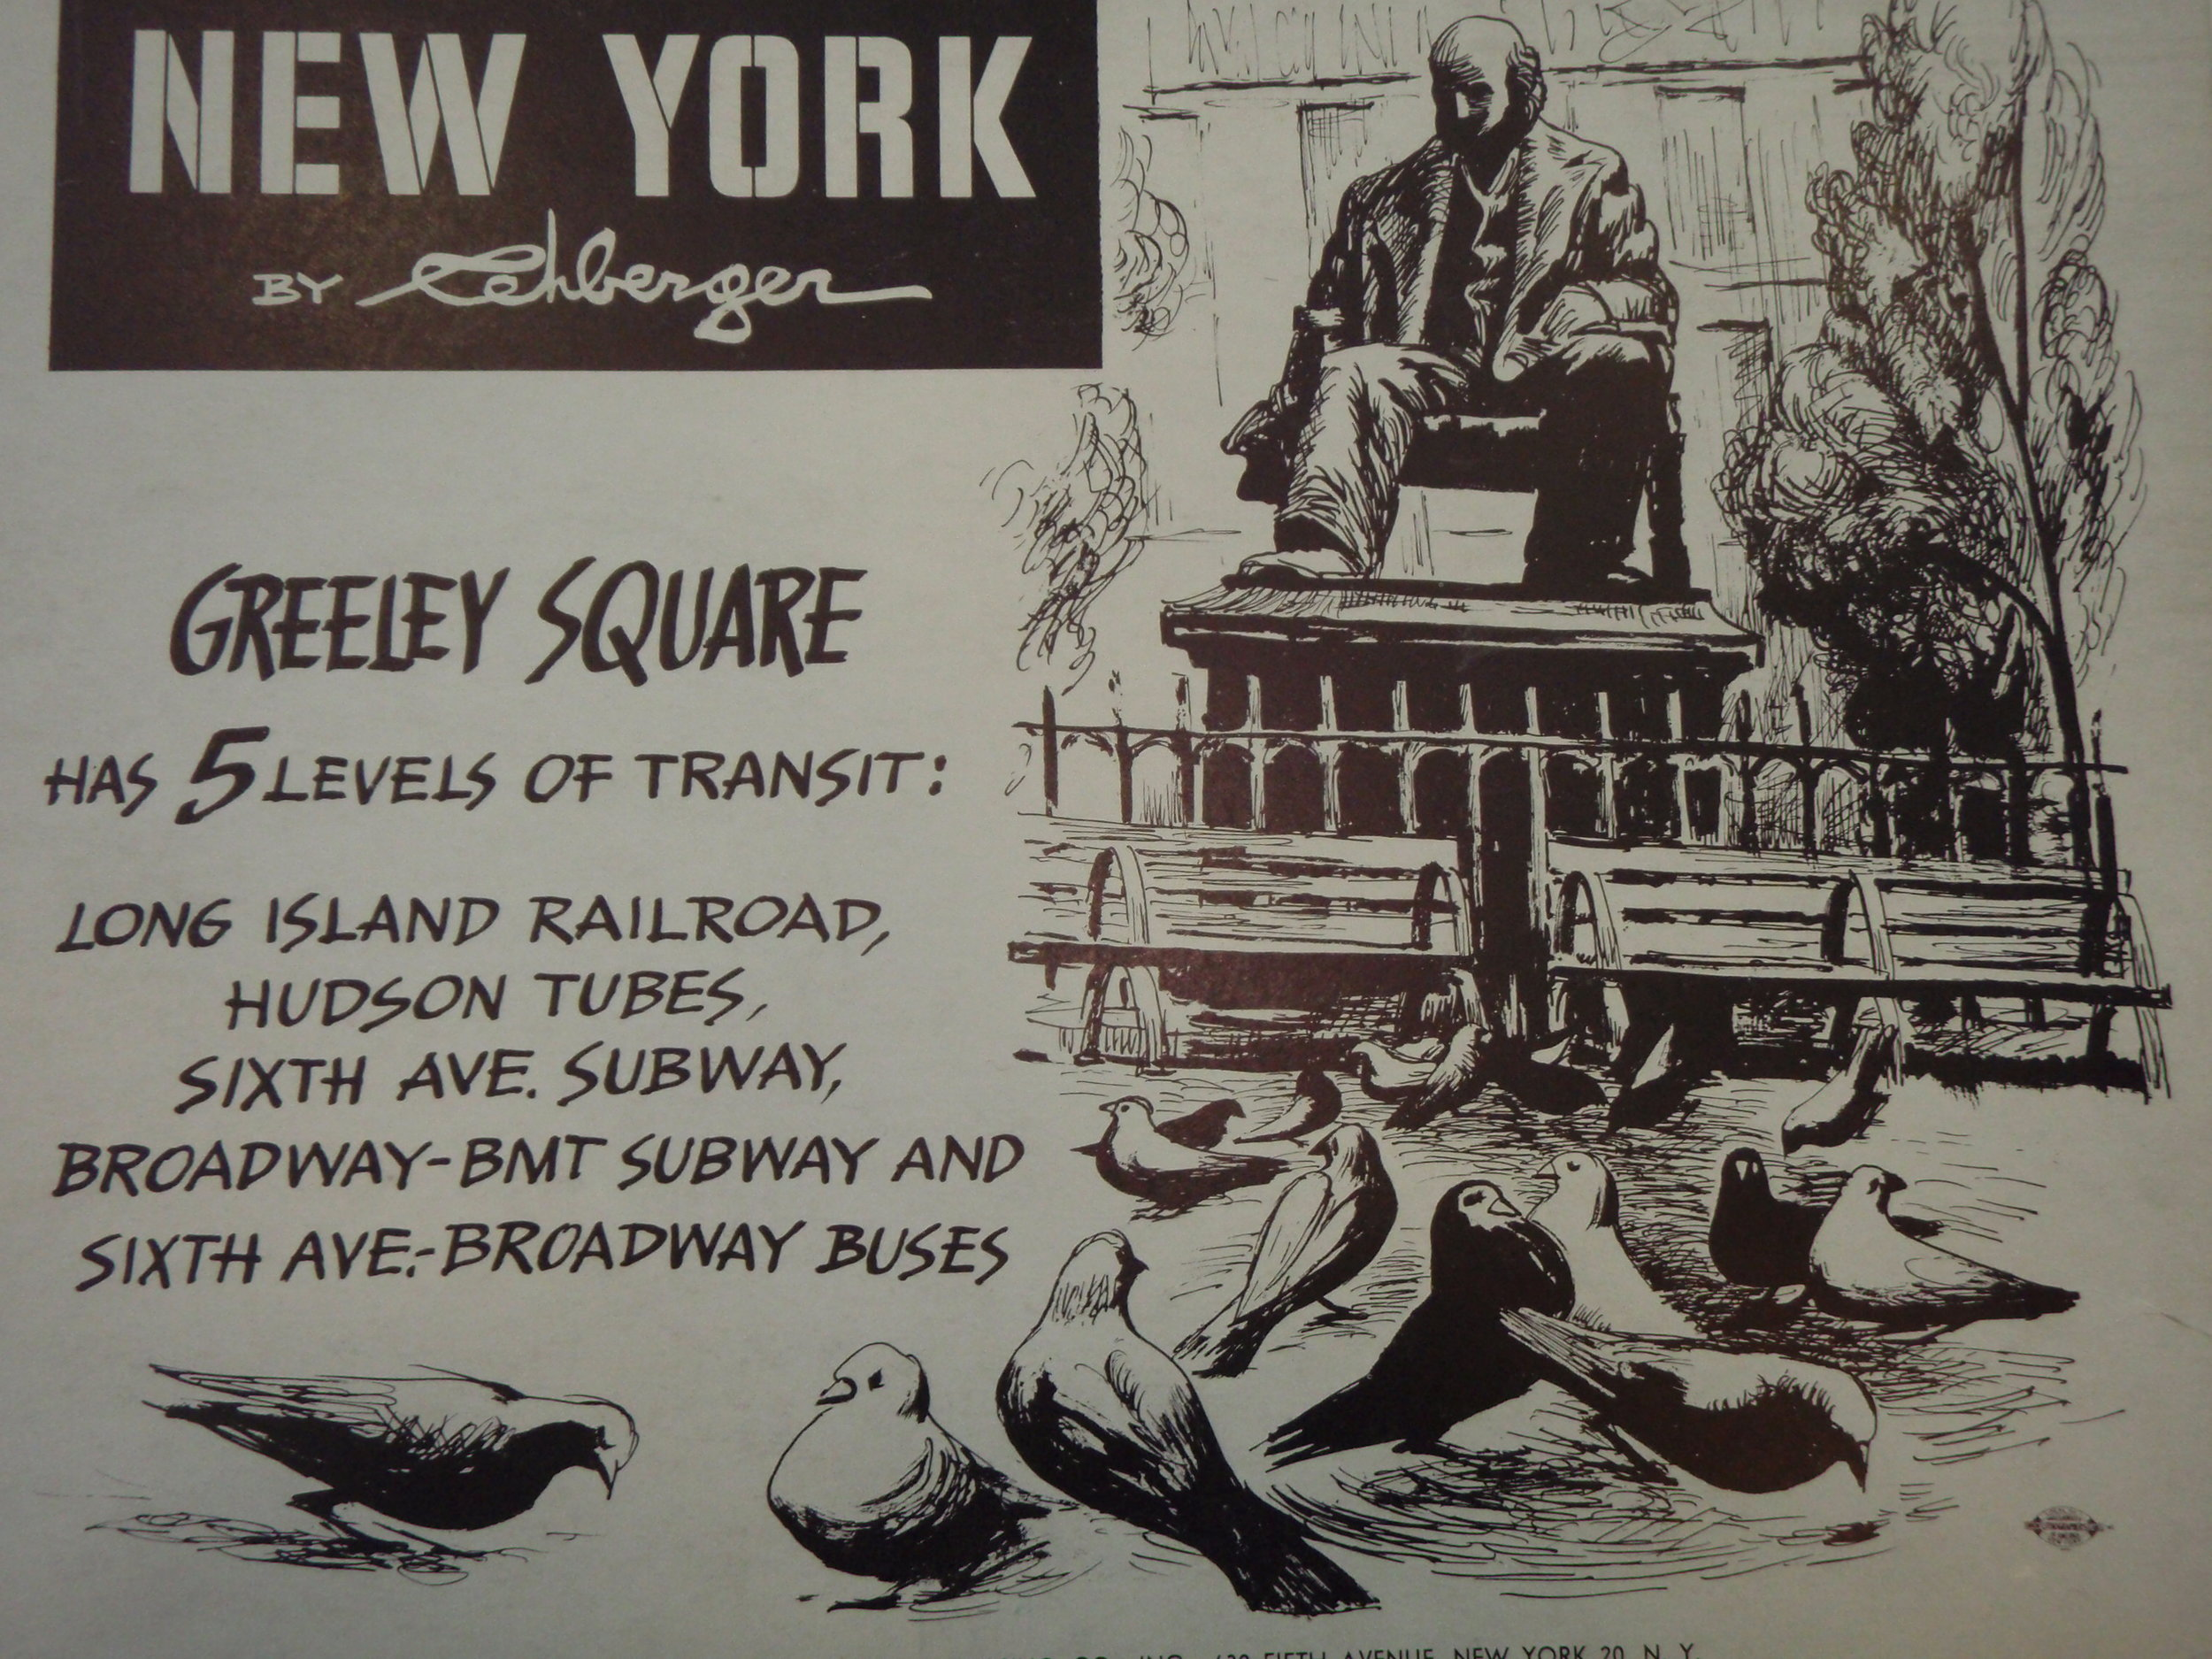 NEW YORK by REHBERGER  1948 #3   Subway Poster -  New York Subways Advertising Co..JPG